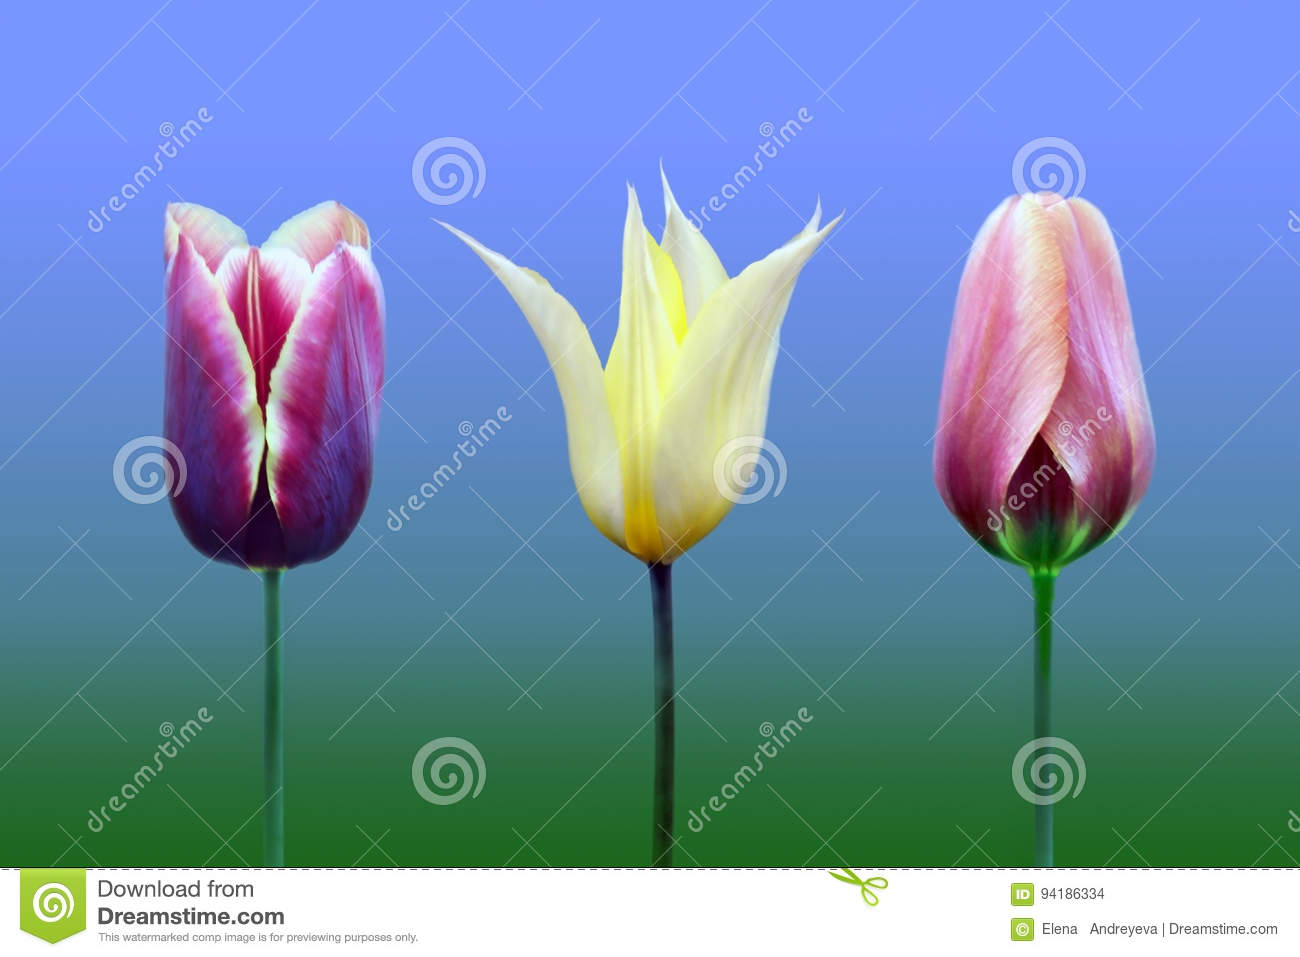 Tulips of the miscellaneous of the sort and colour